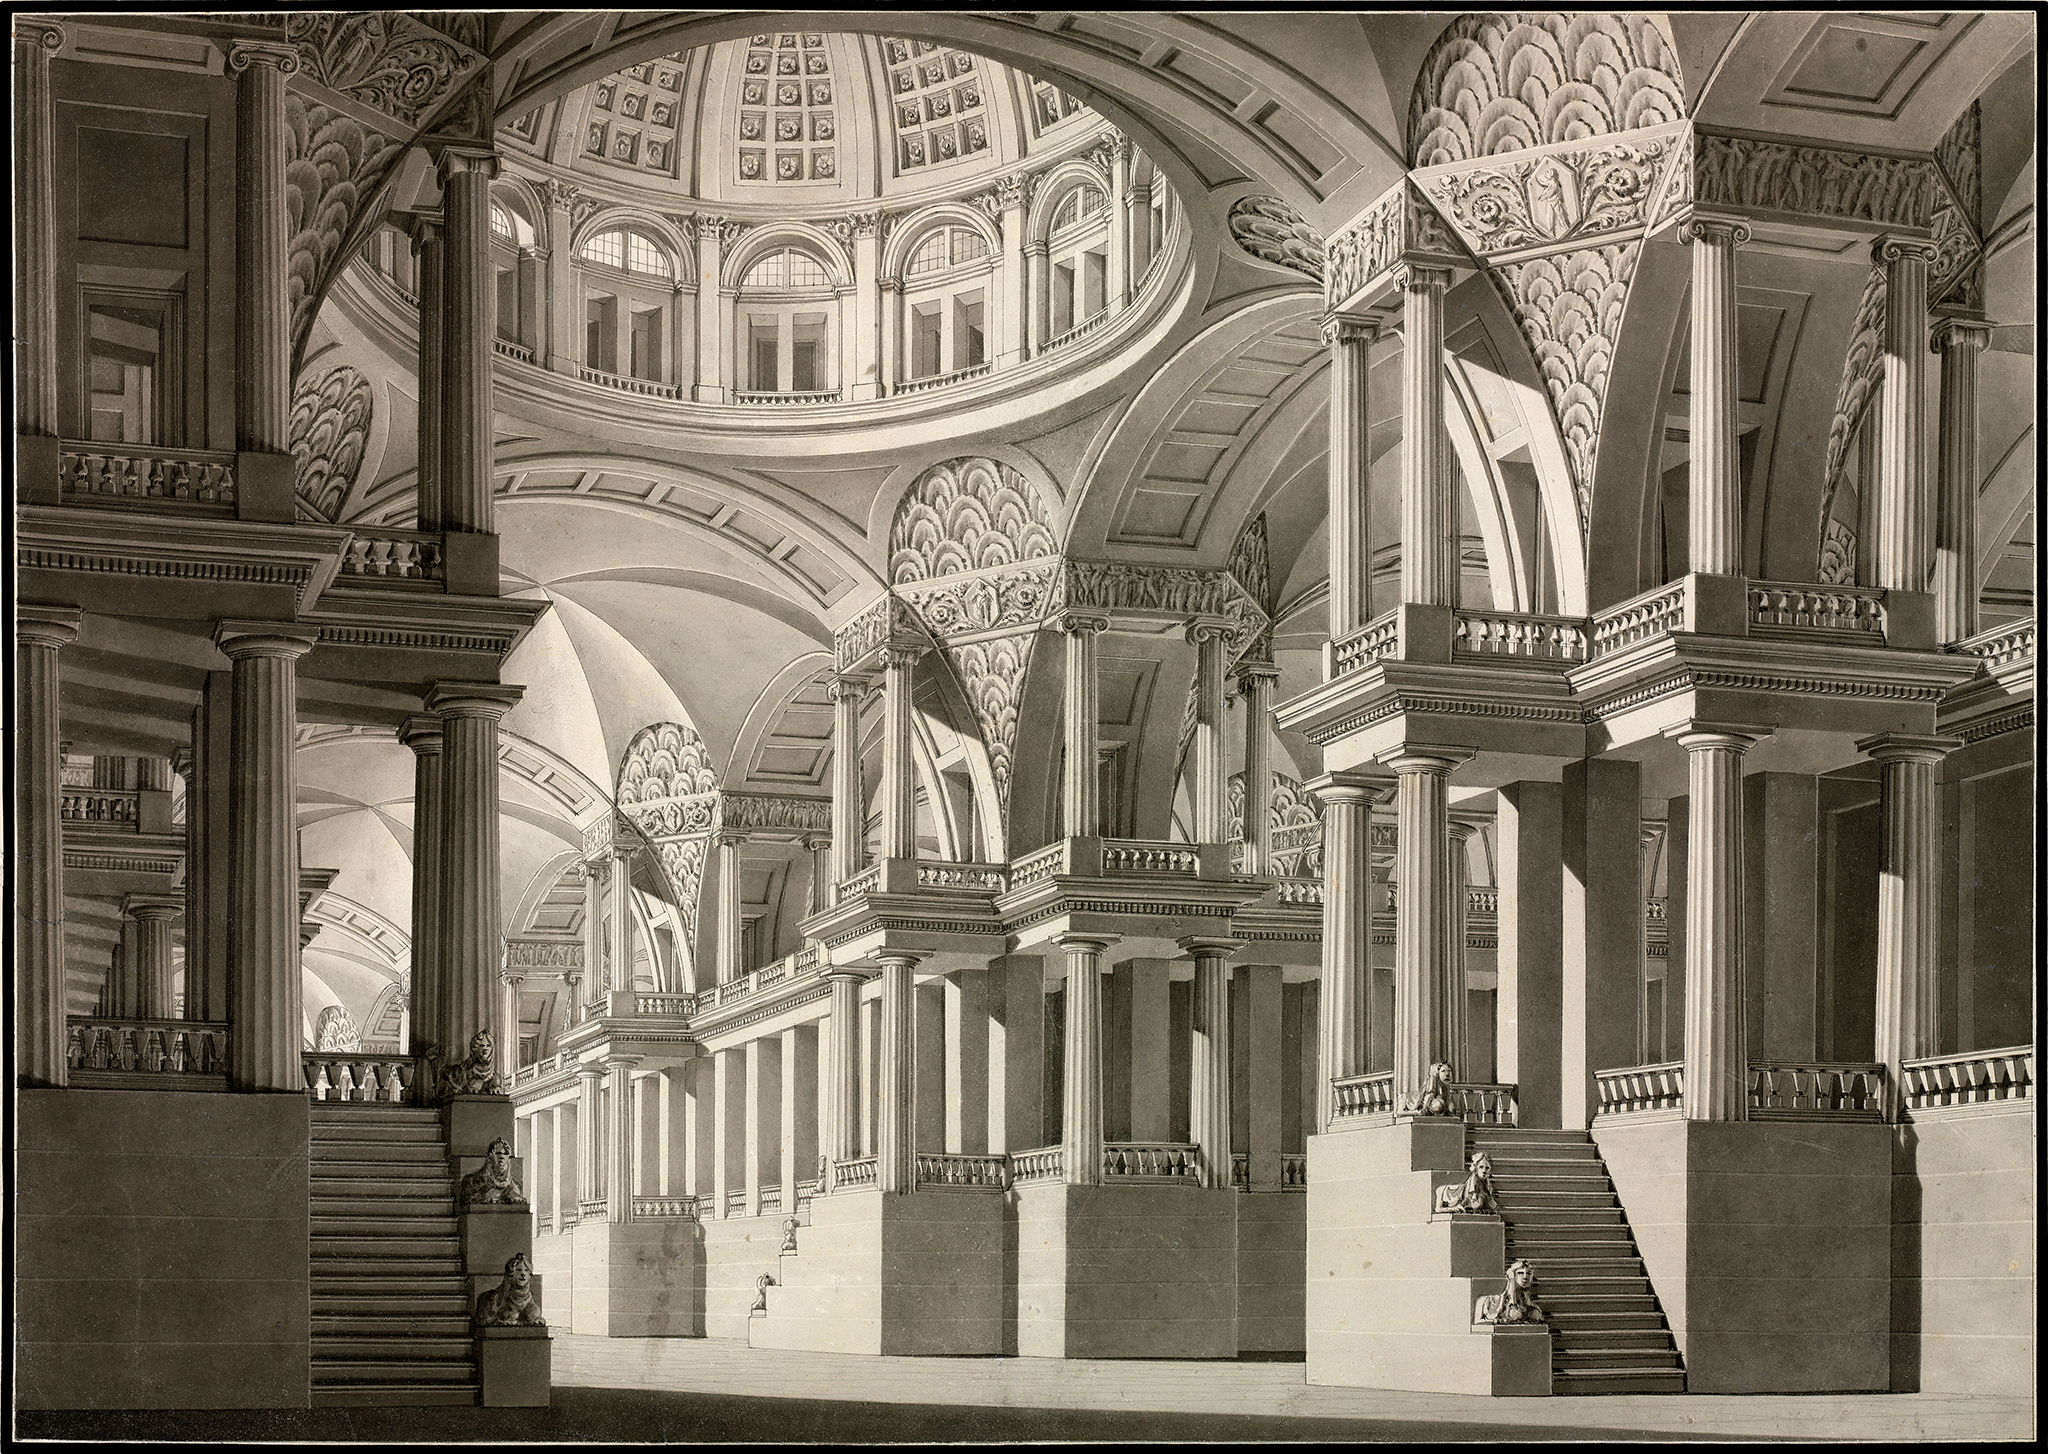 architecture and ornamentation drawings from the national